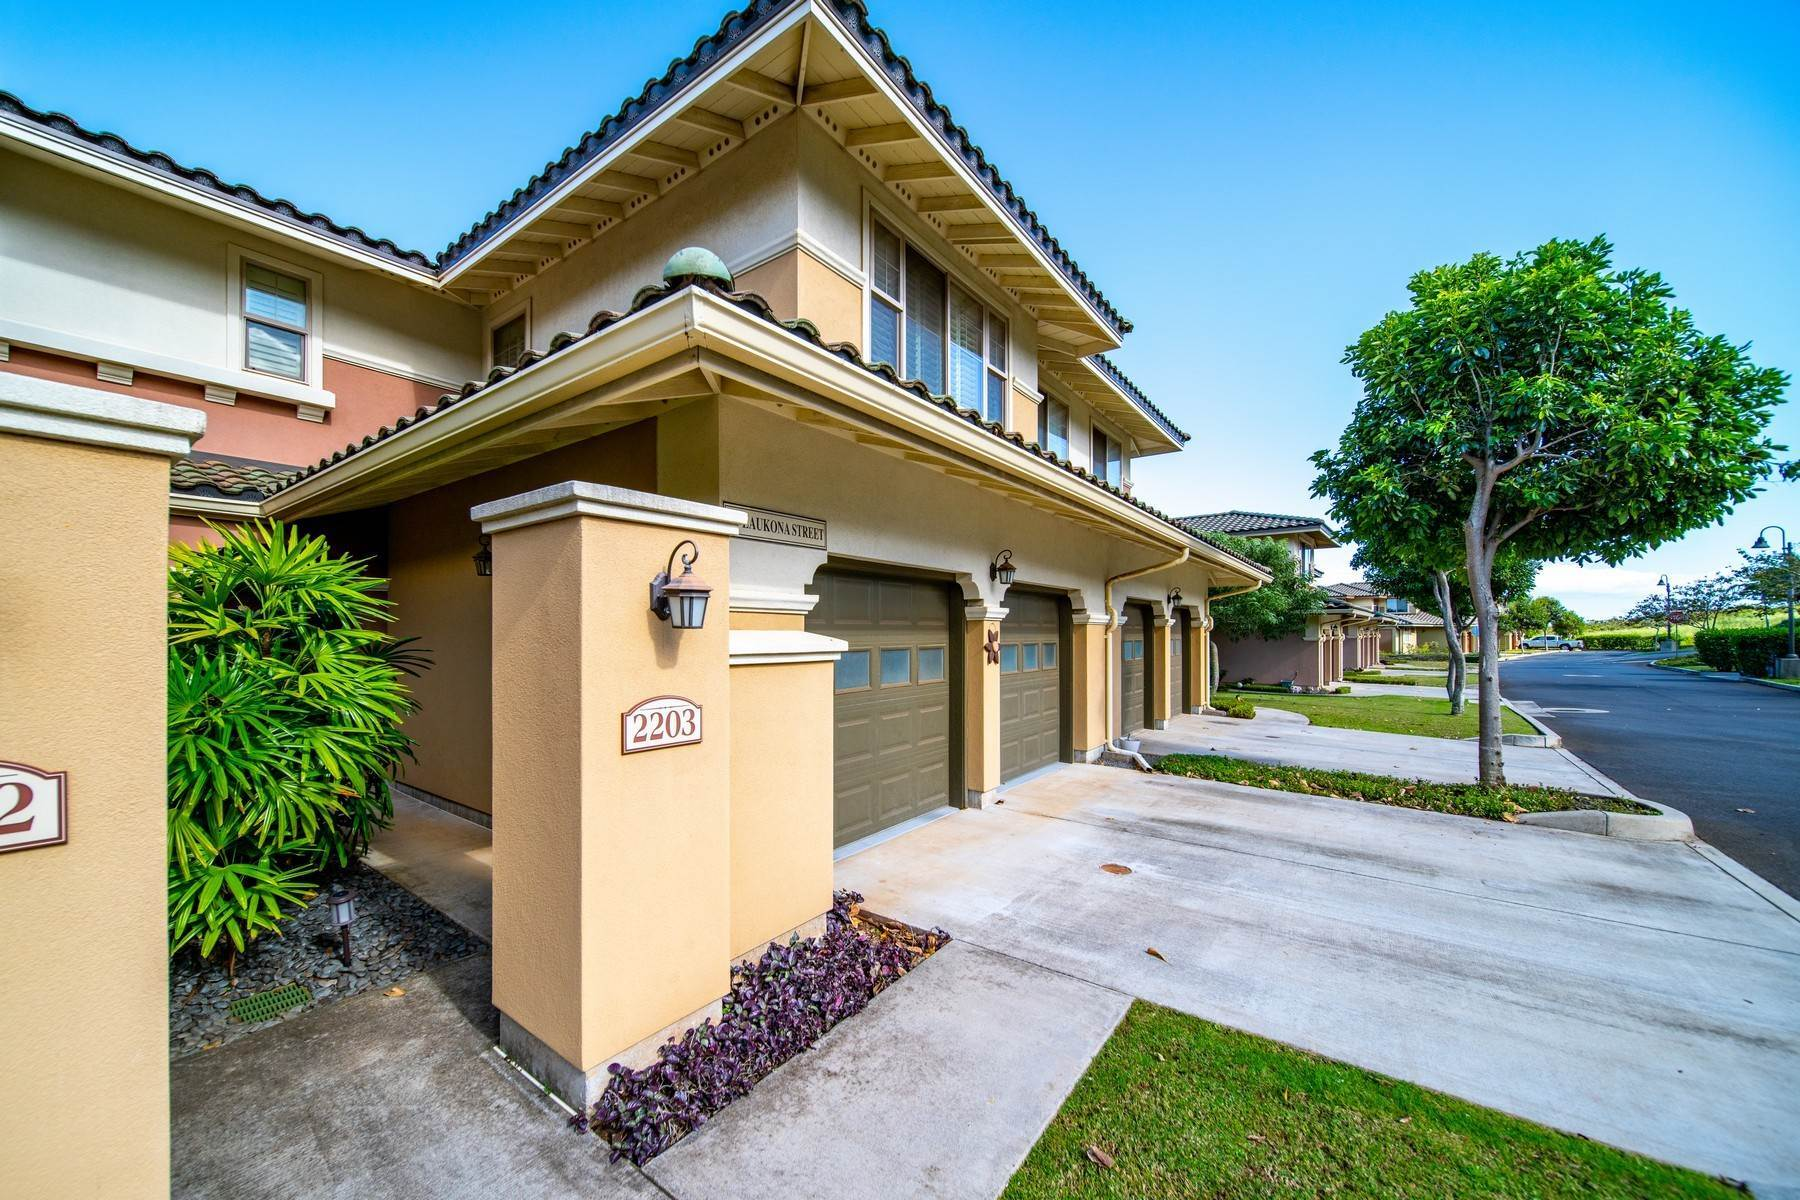 Condominiums 为 销售 在 Affordable Luxury in Central Maui Villas at Kehalani, 45 Laukona Street, #2203 怀卢库, 夏威夷 96793 美国